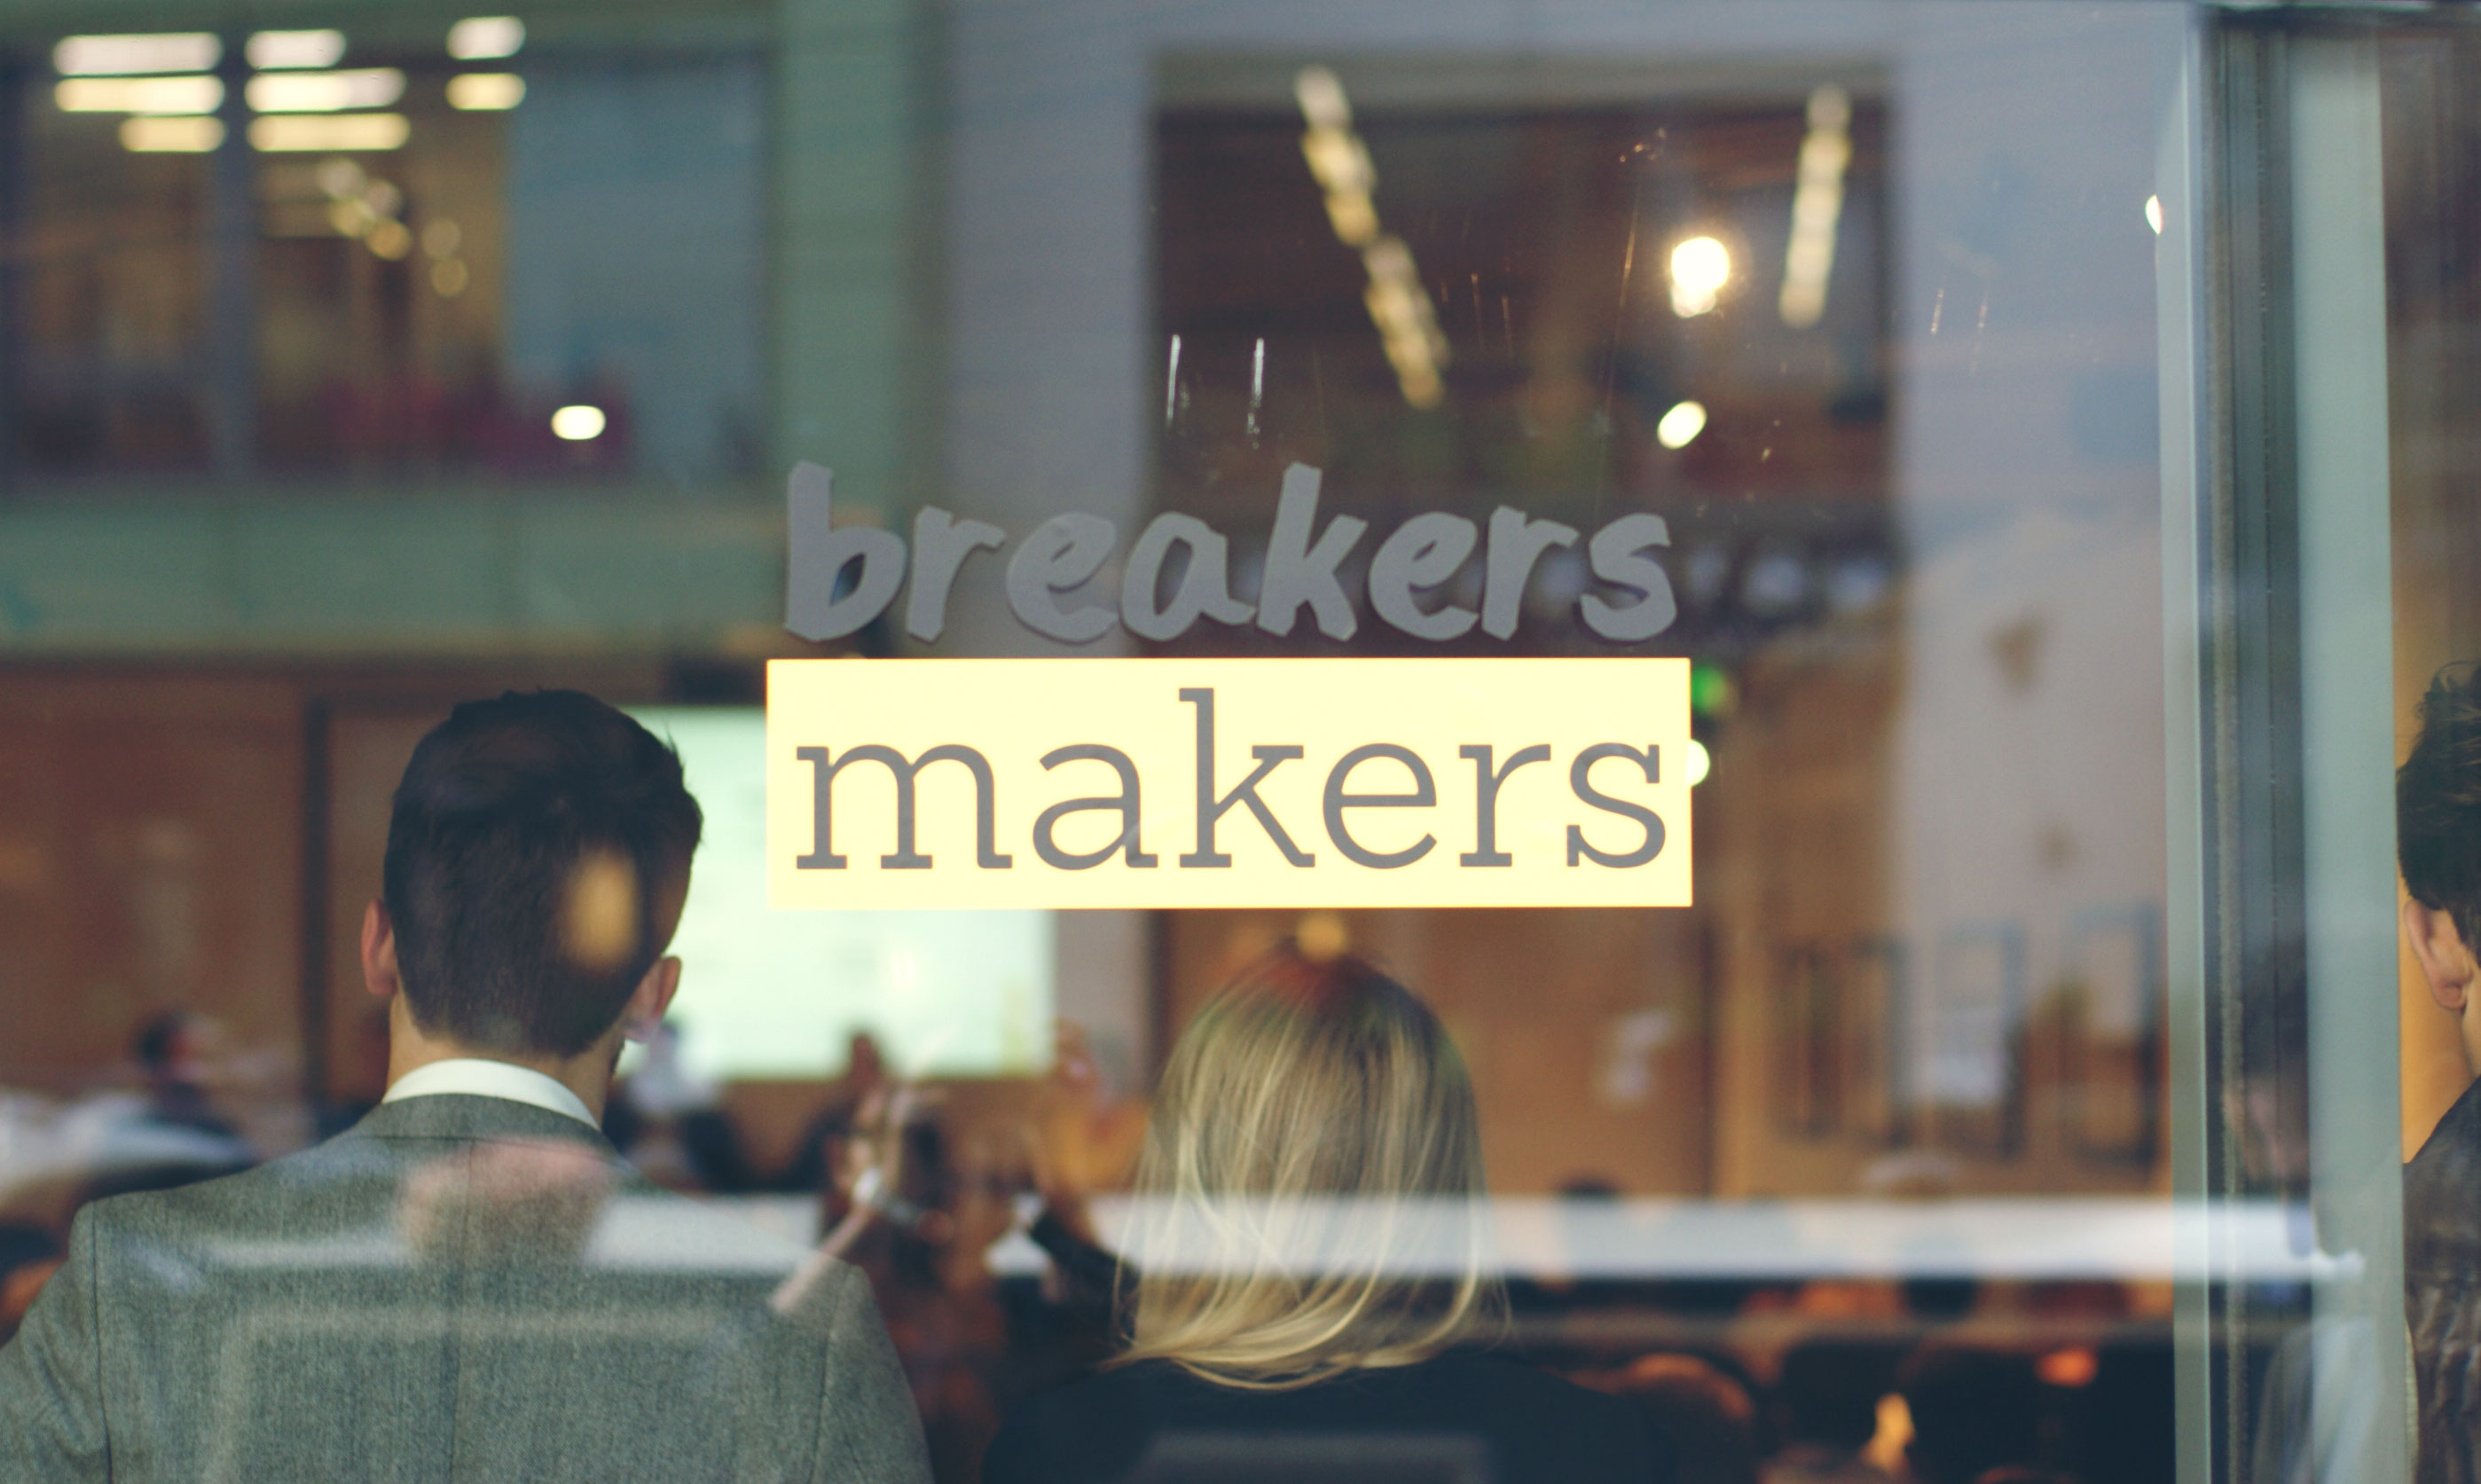 Breakers to Makers Recap: Part 1